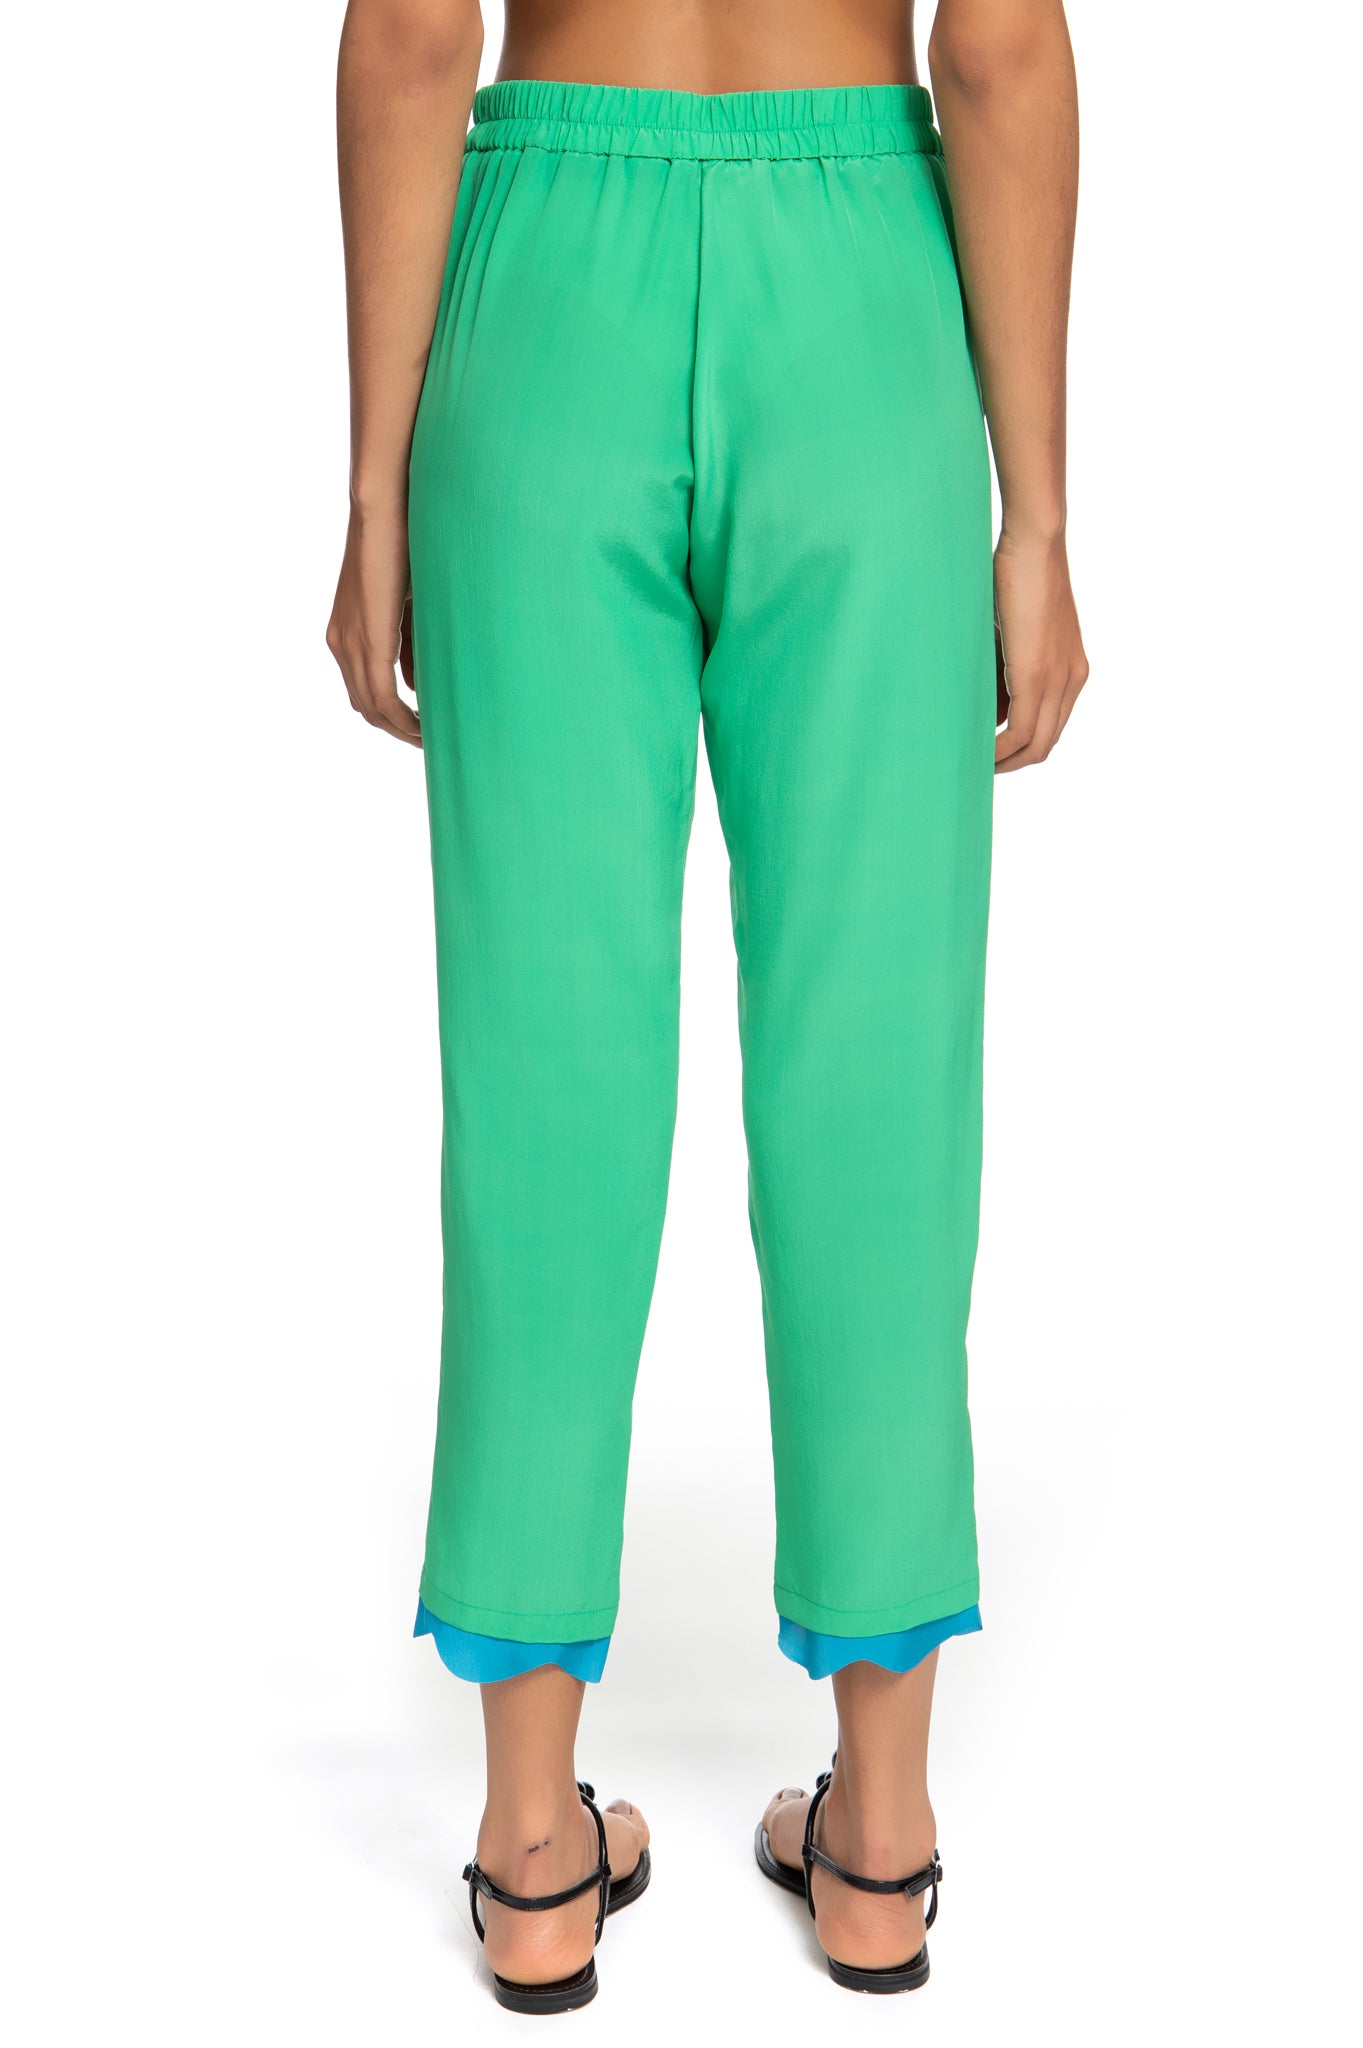 GREEN WAVES ELASTIC PANTS